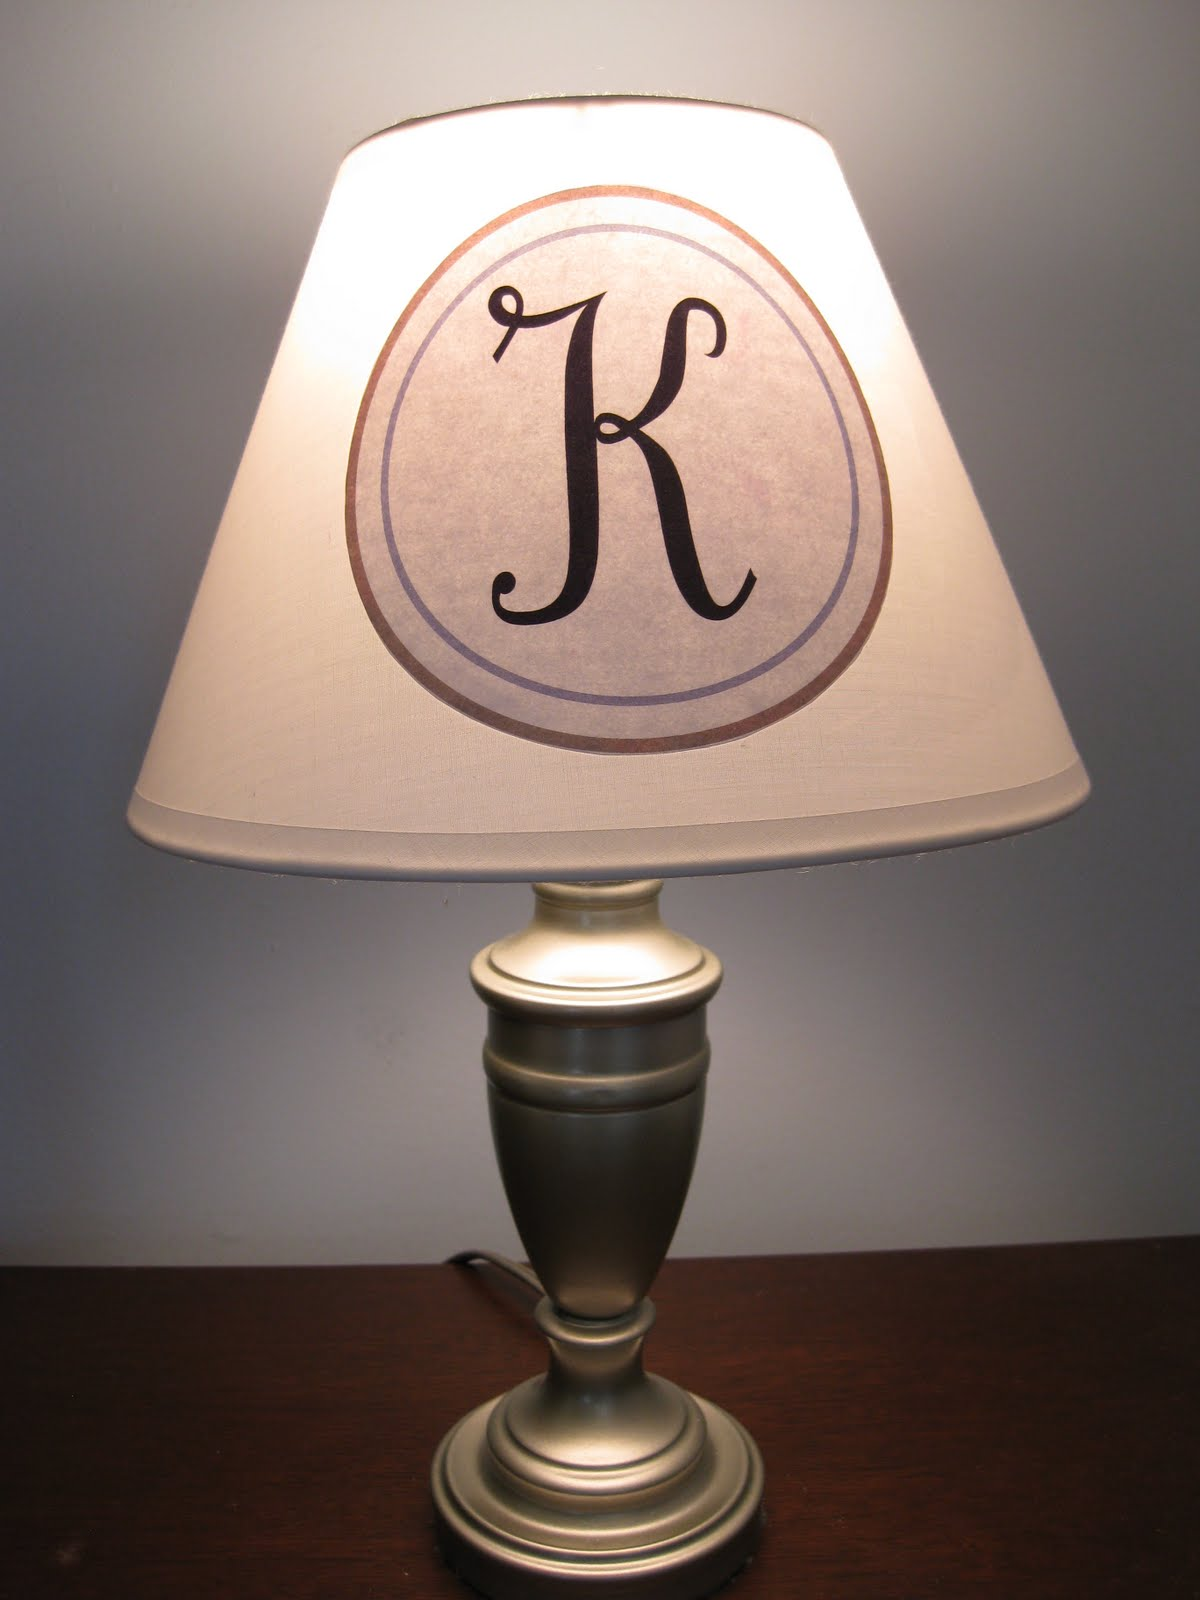 The hand me down house monogrammed light shade plus a monogram the hand me down house monogrammed light shade plus a monogram print for you mozeypictures Image collections